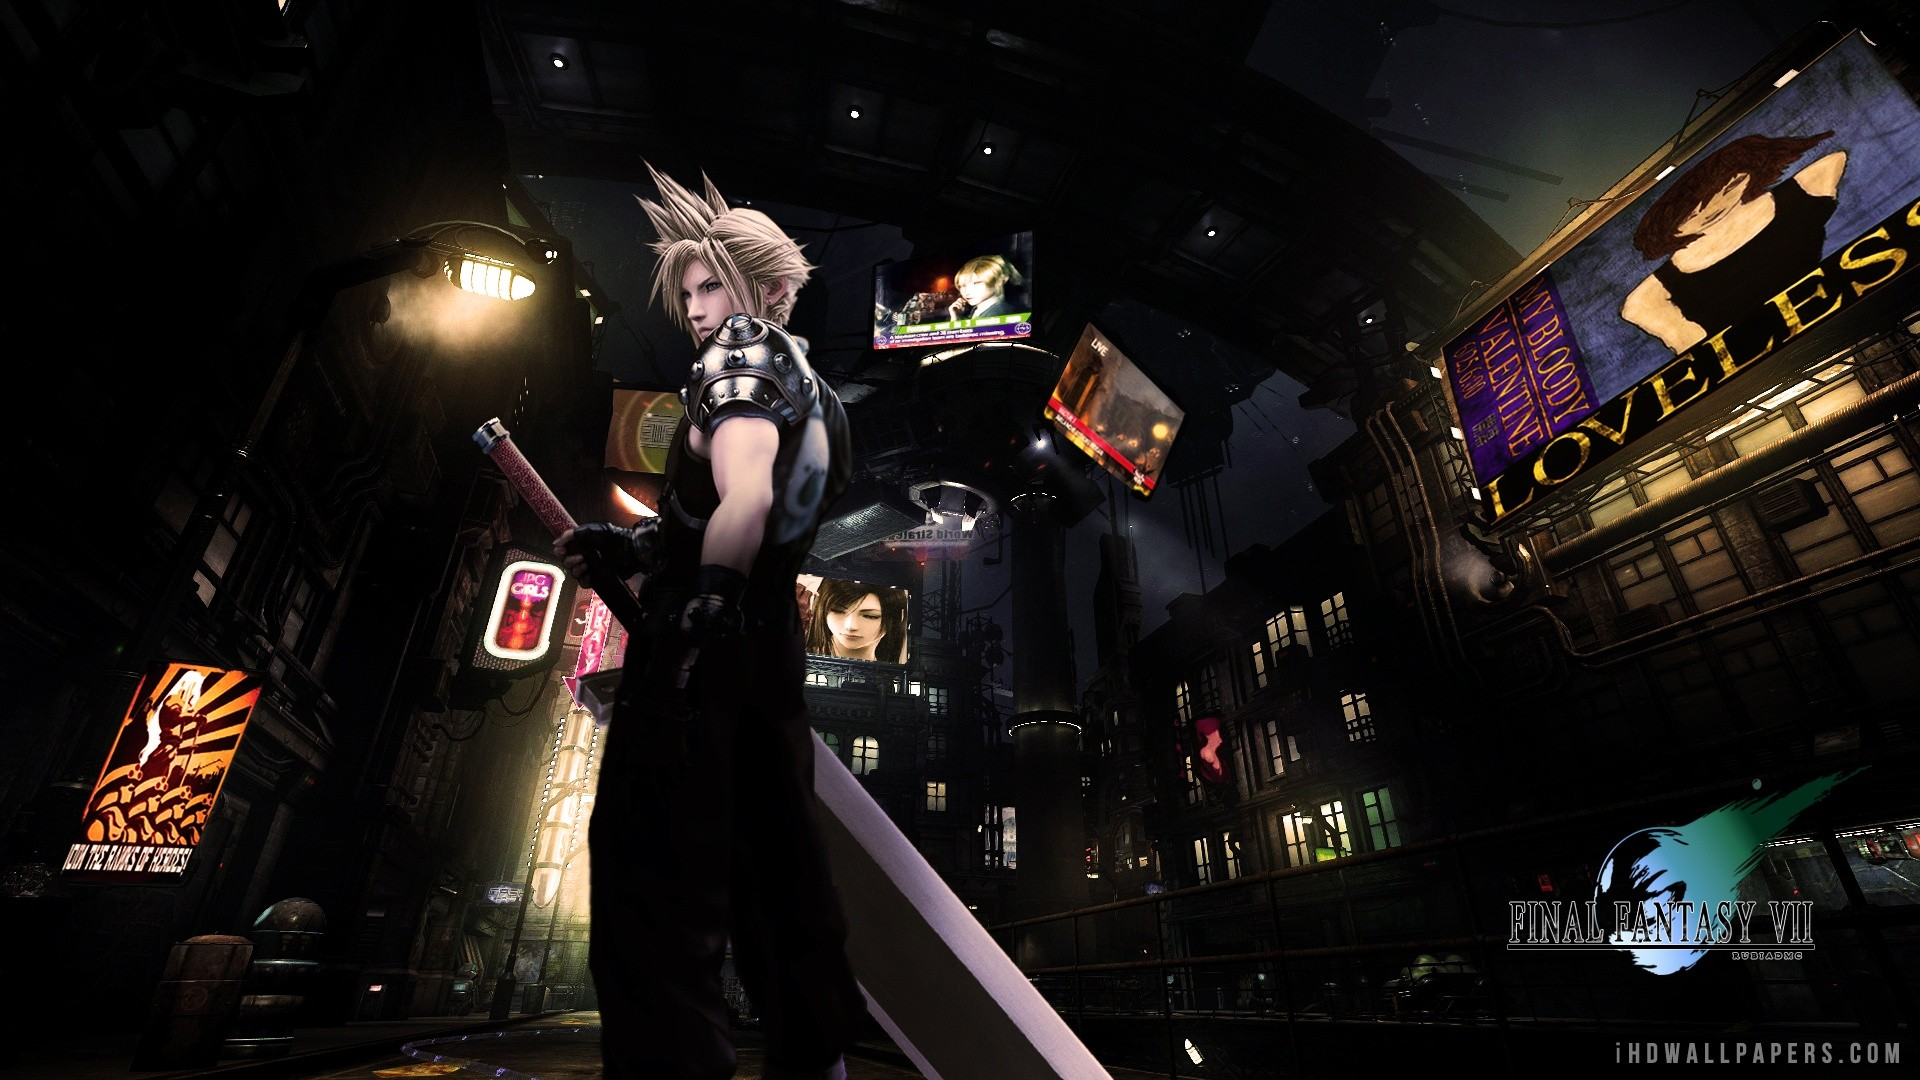 Final fantasy vii wallpaper download free awesome full hd final fantasy wallpaper 1920x1080 altavistaventures Gallery